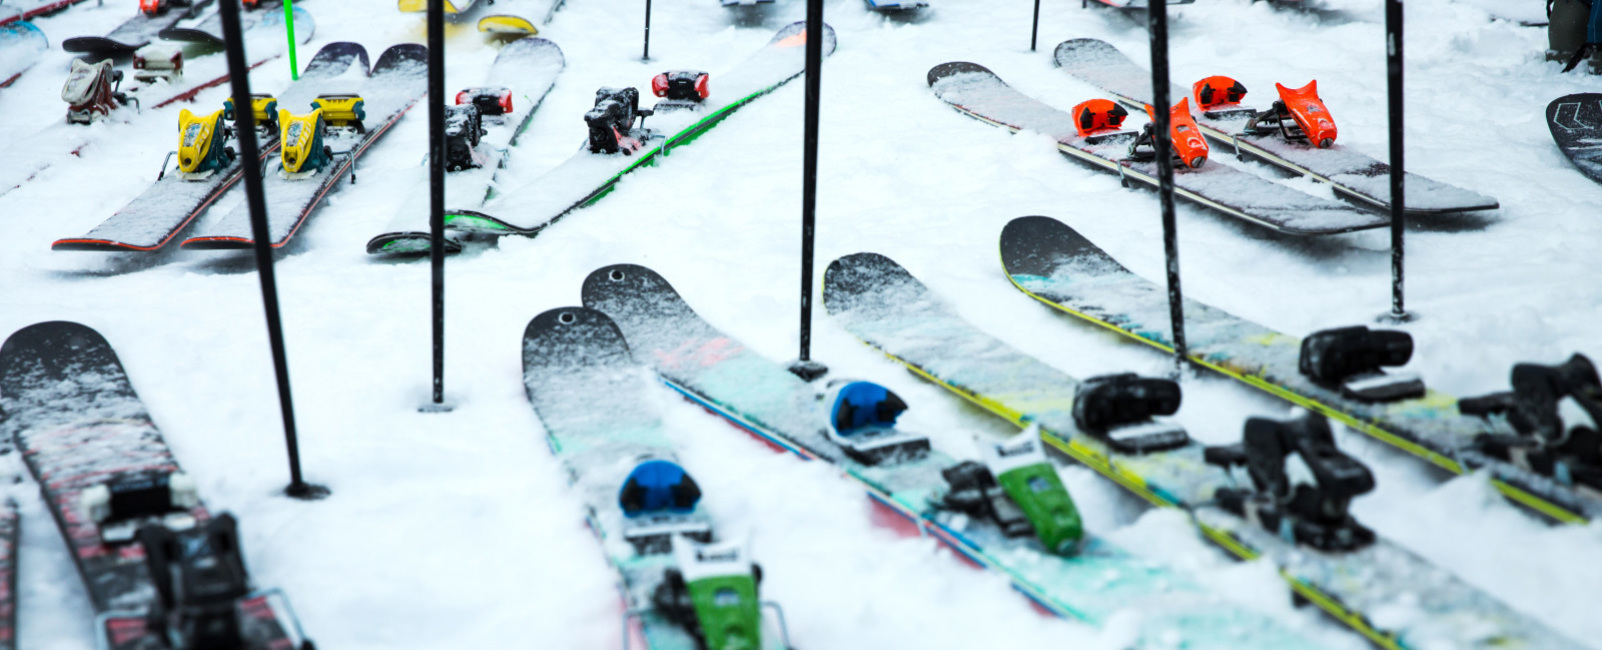 How to Store Your Ski and Snowboard Gear for Summer